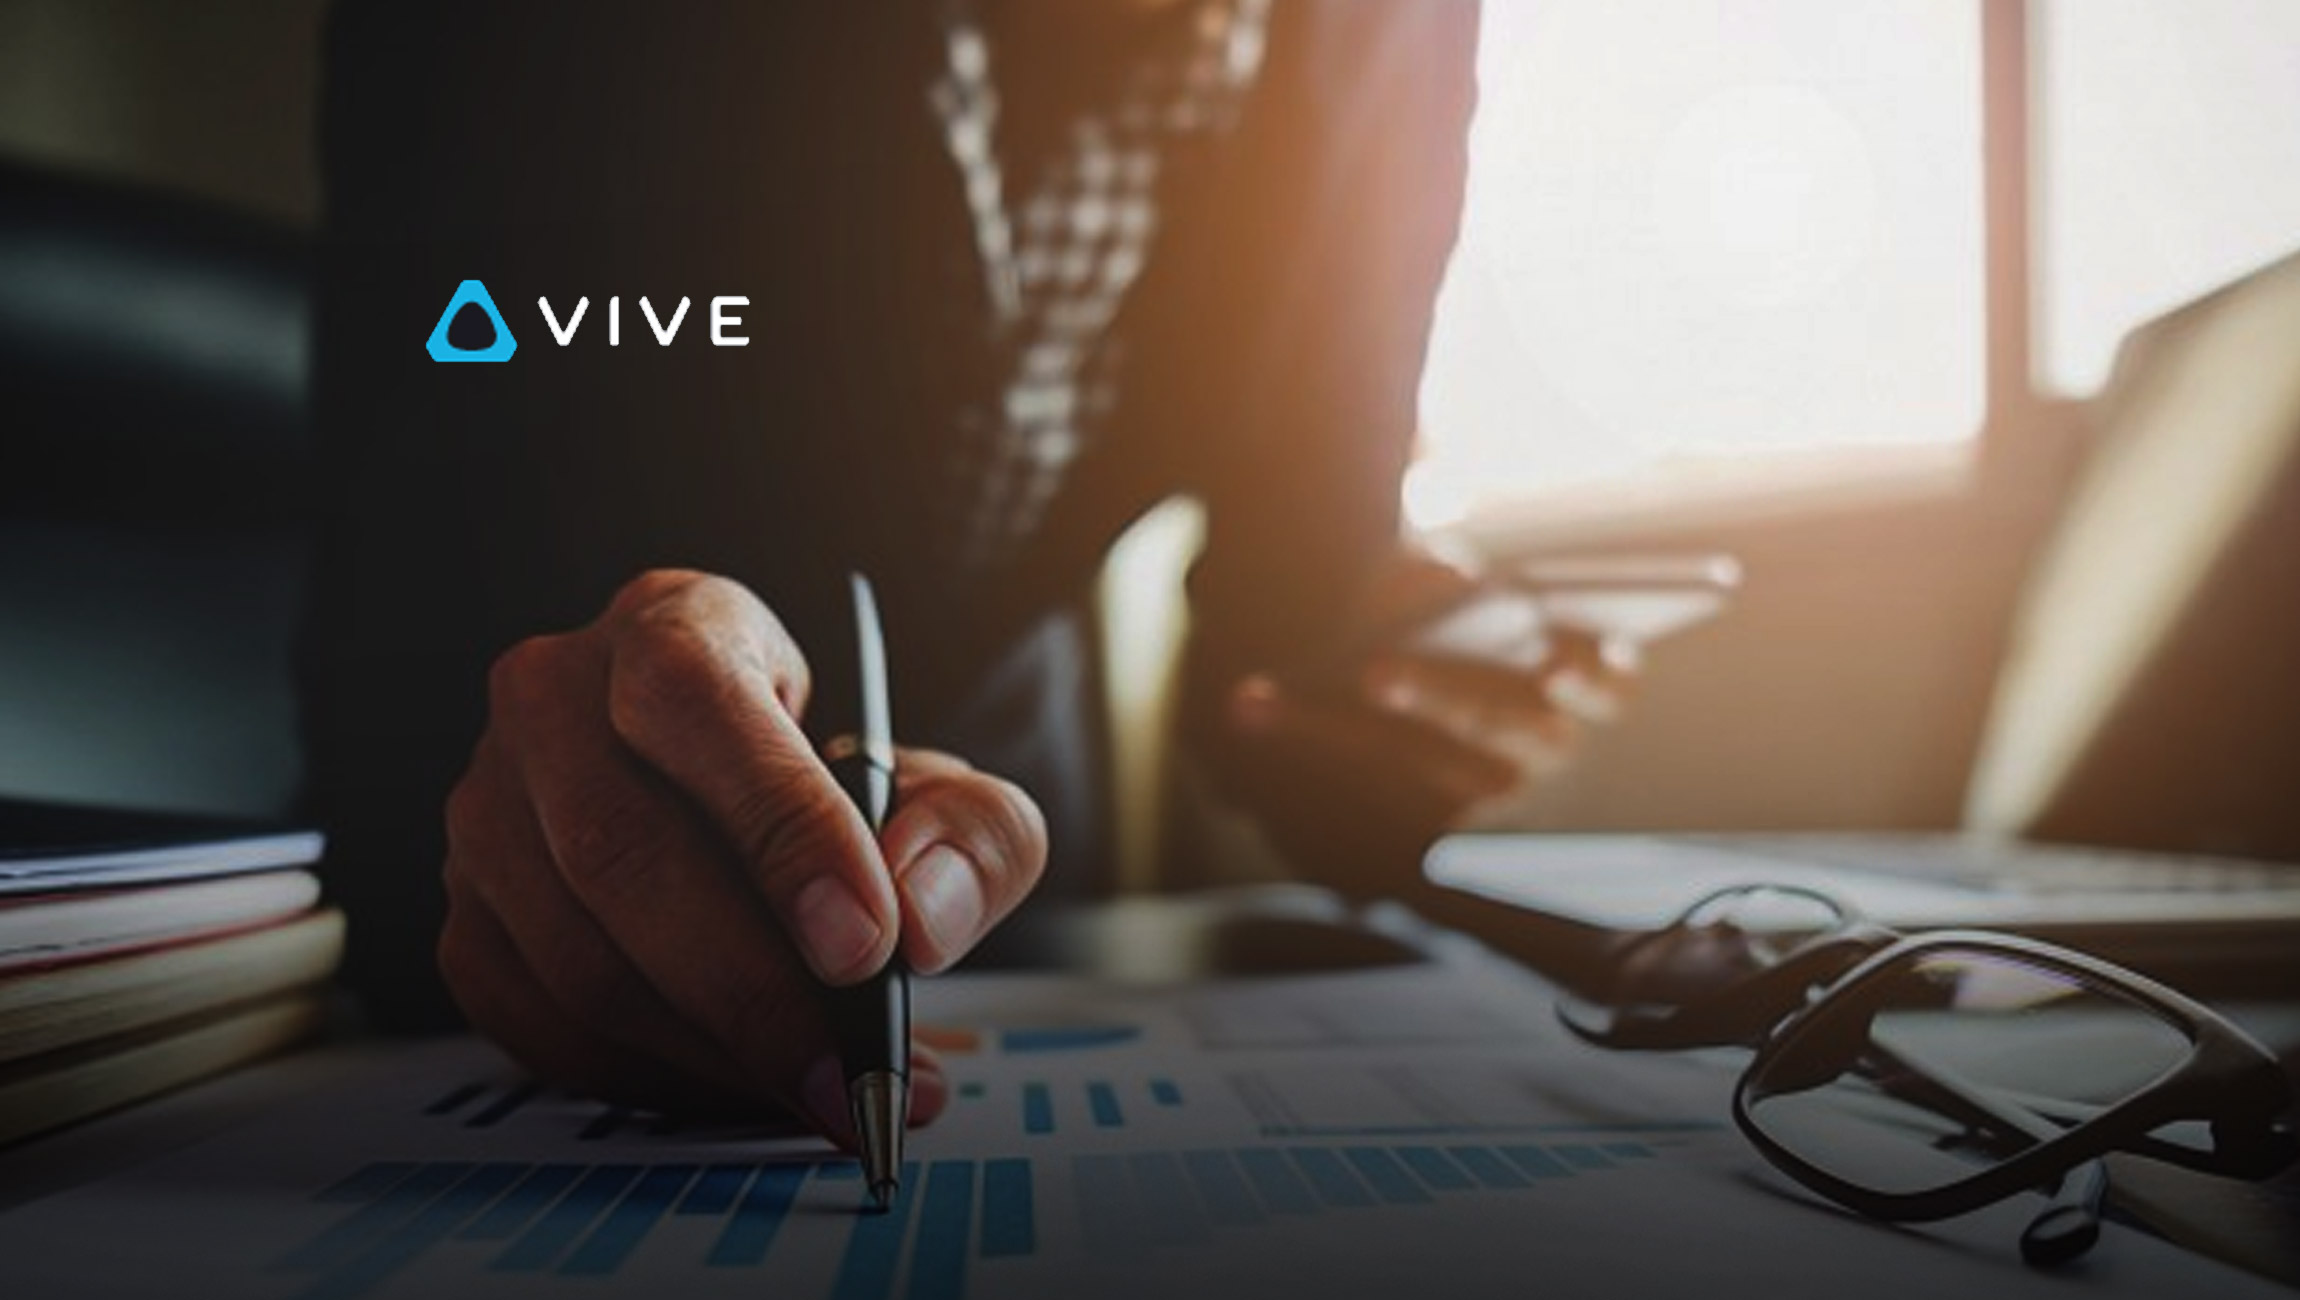 VIVE X Reaches Investment Milestone - Double Returns On XR Investments